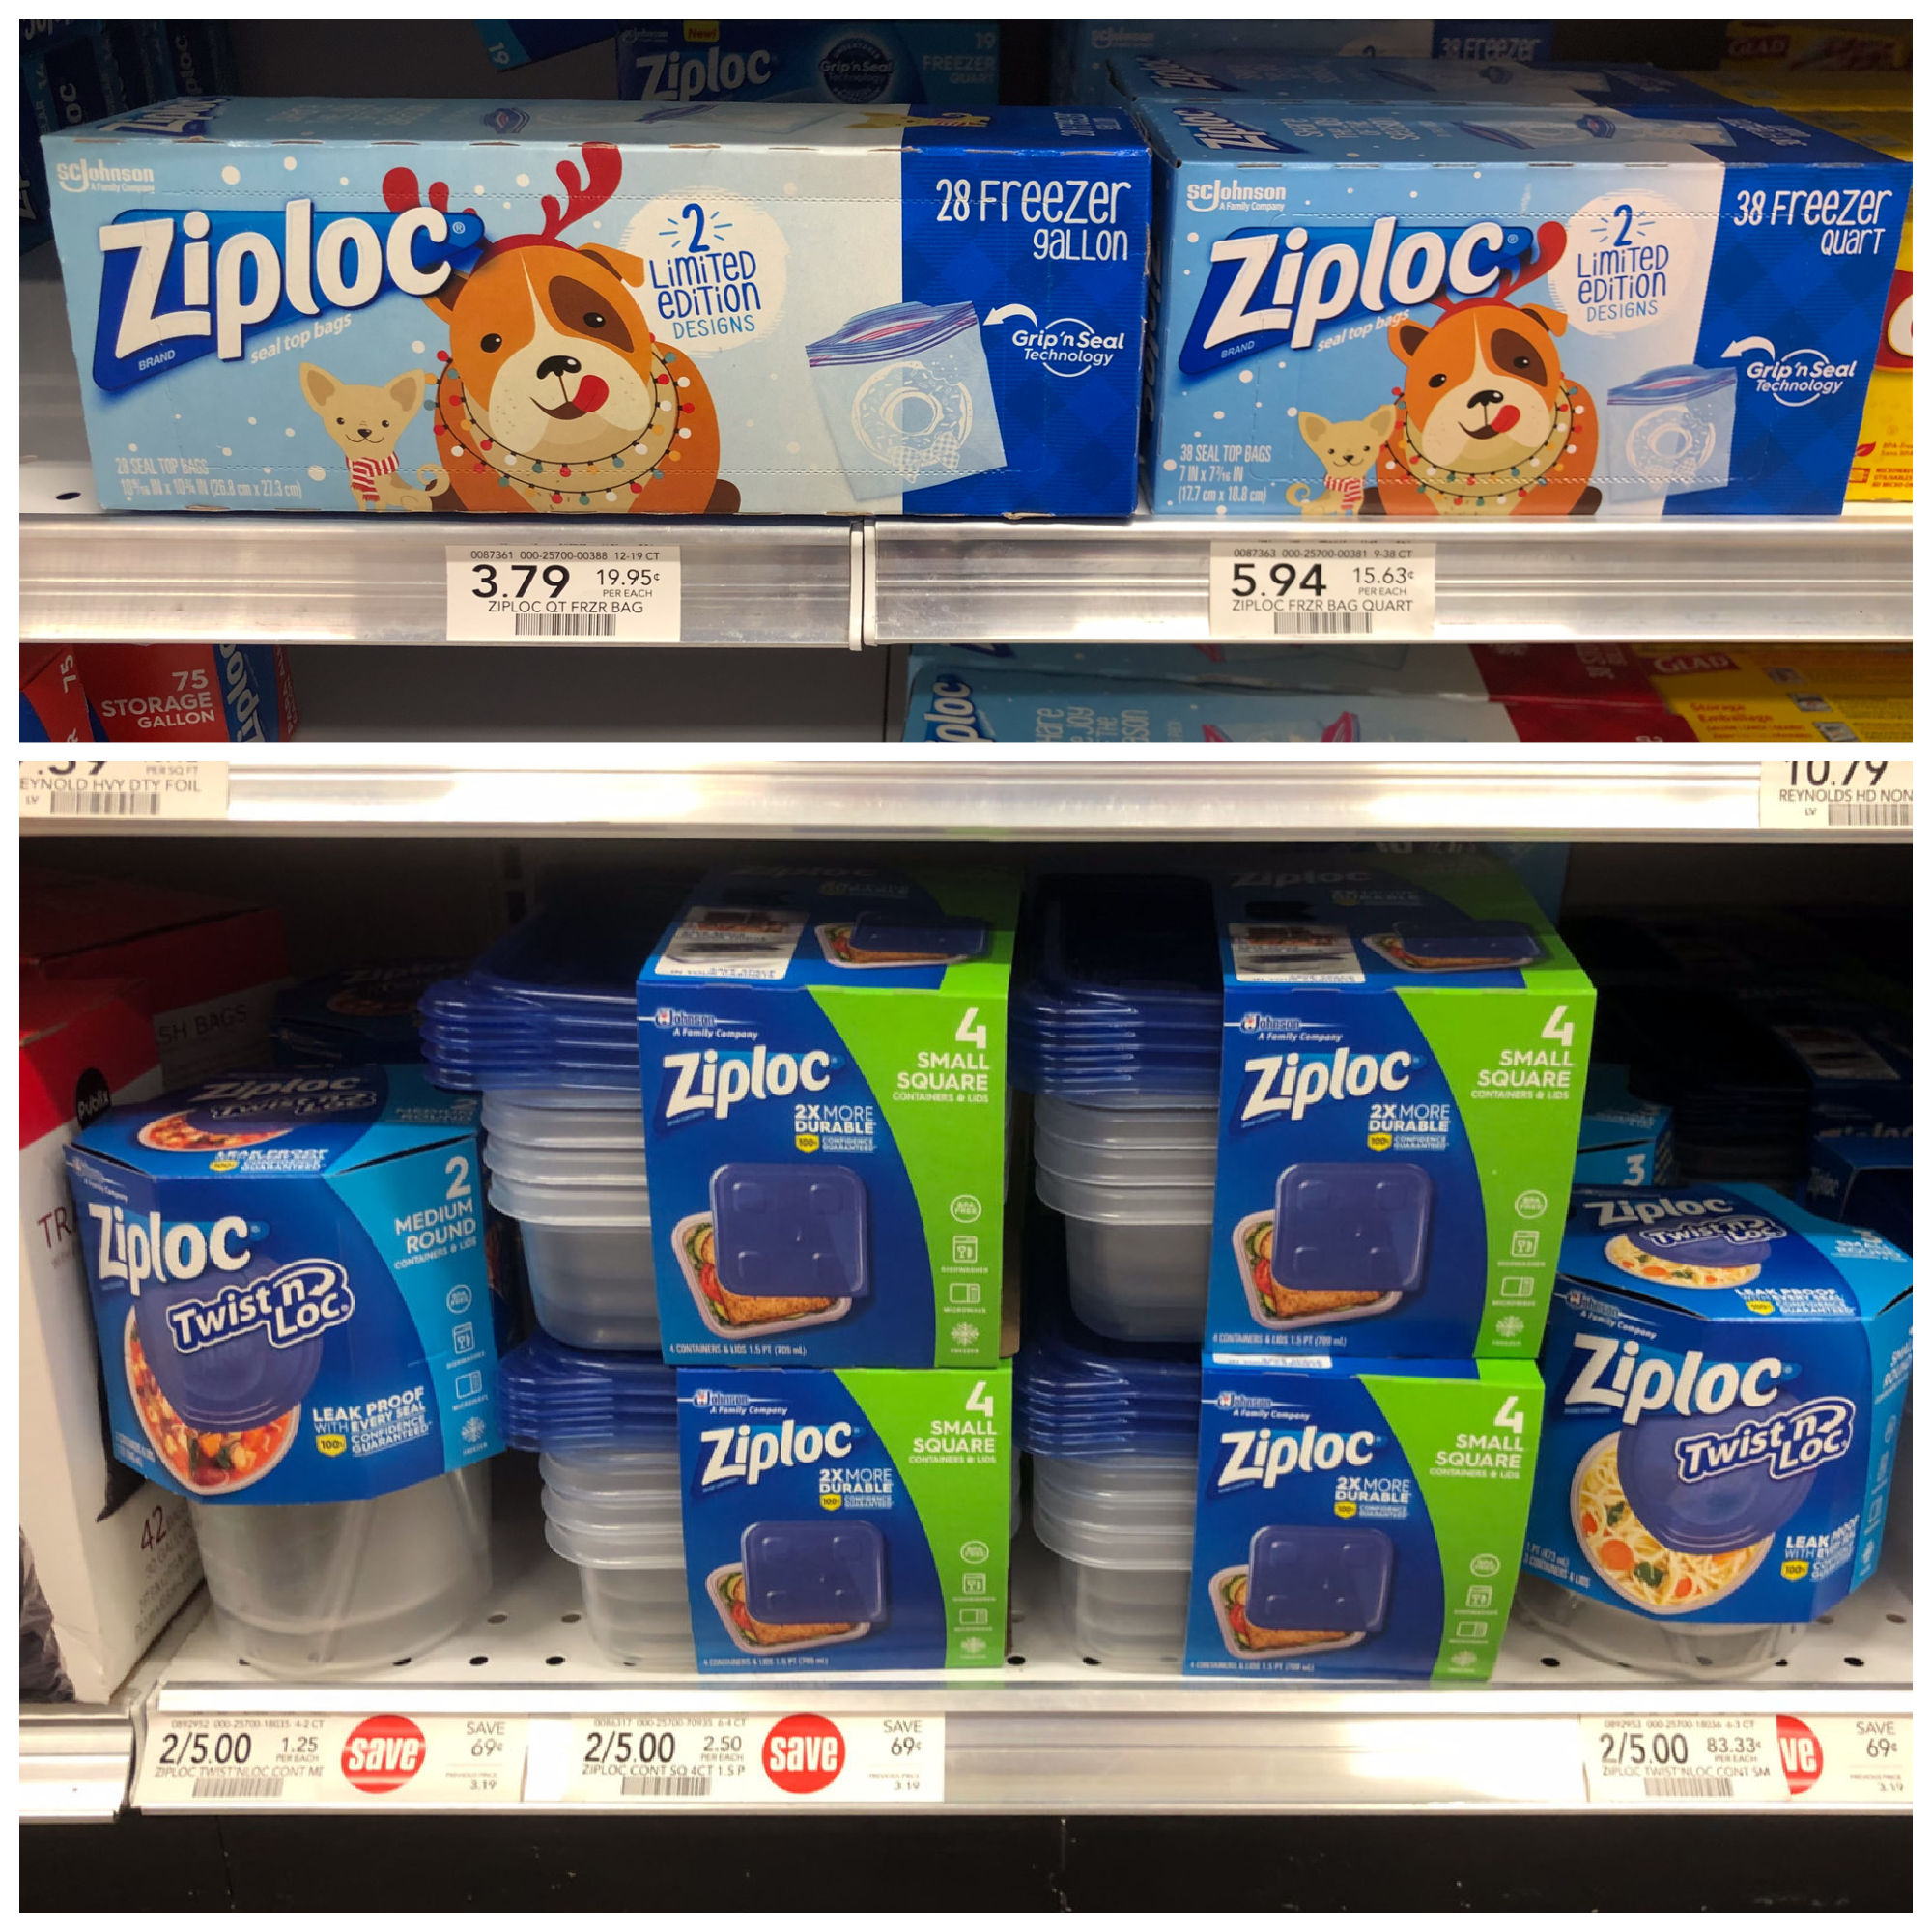 Spread Holiday Cheer With Ziploc® Brand Bags And Containers - Save At Publix on I Heart Publix 1